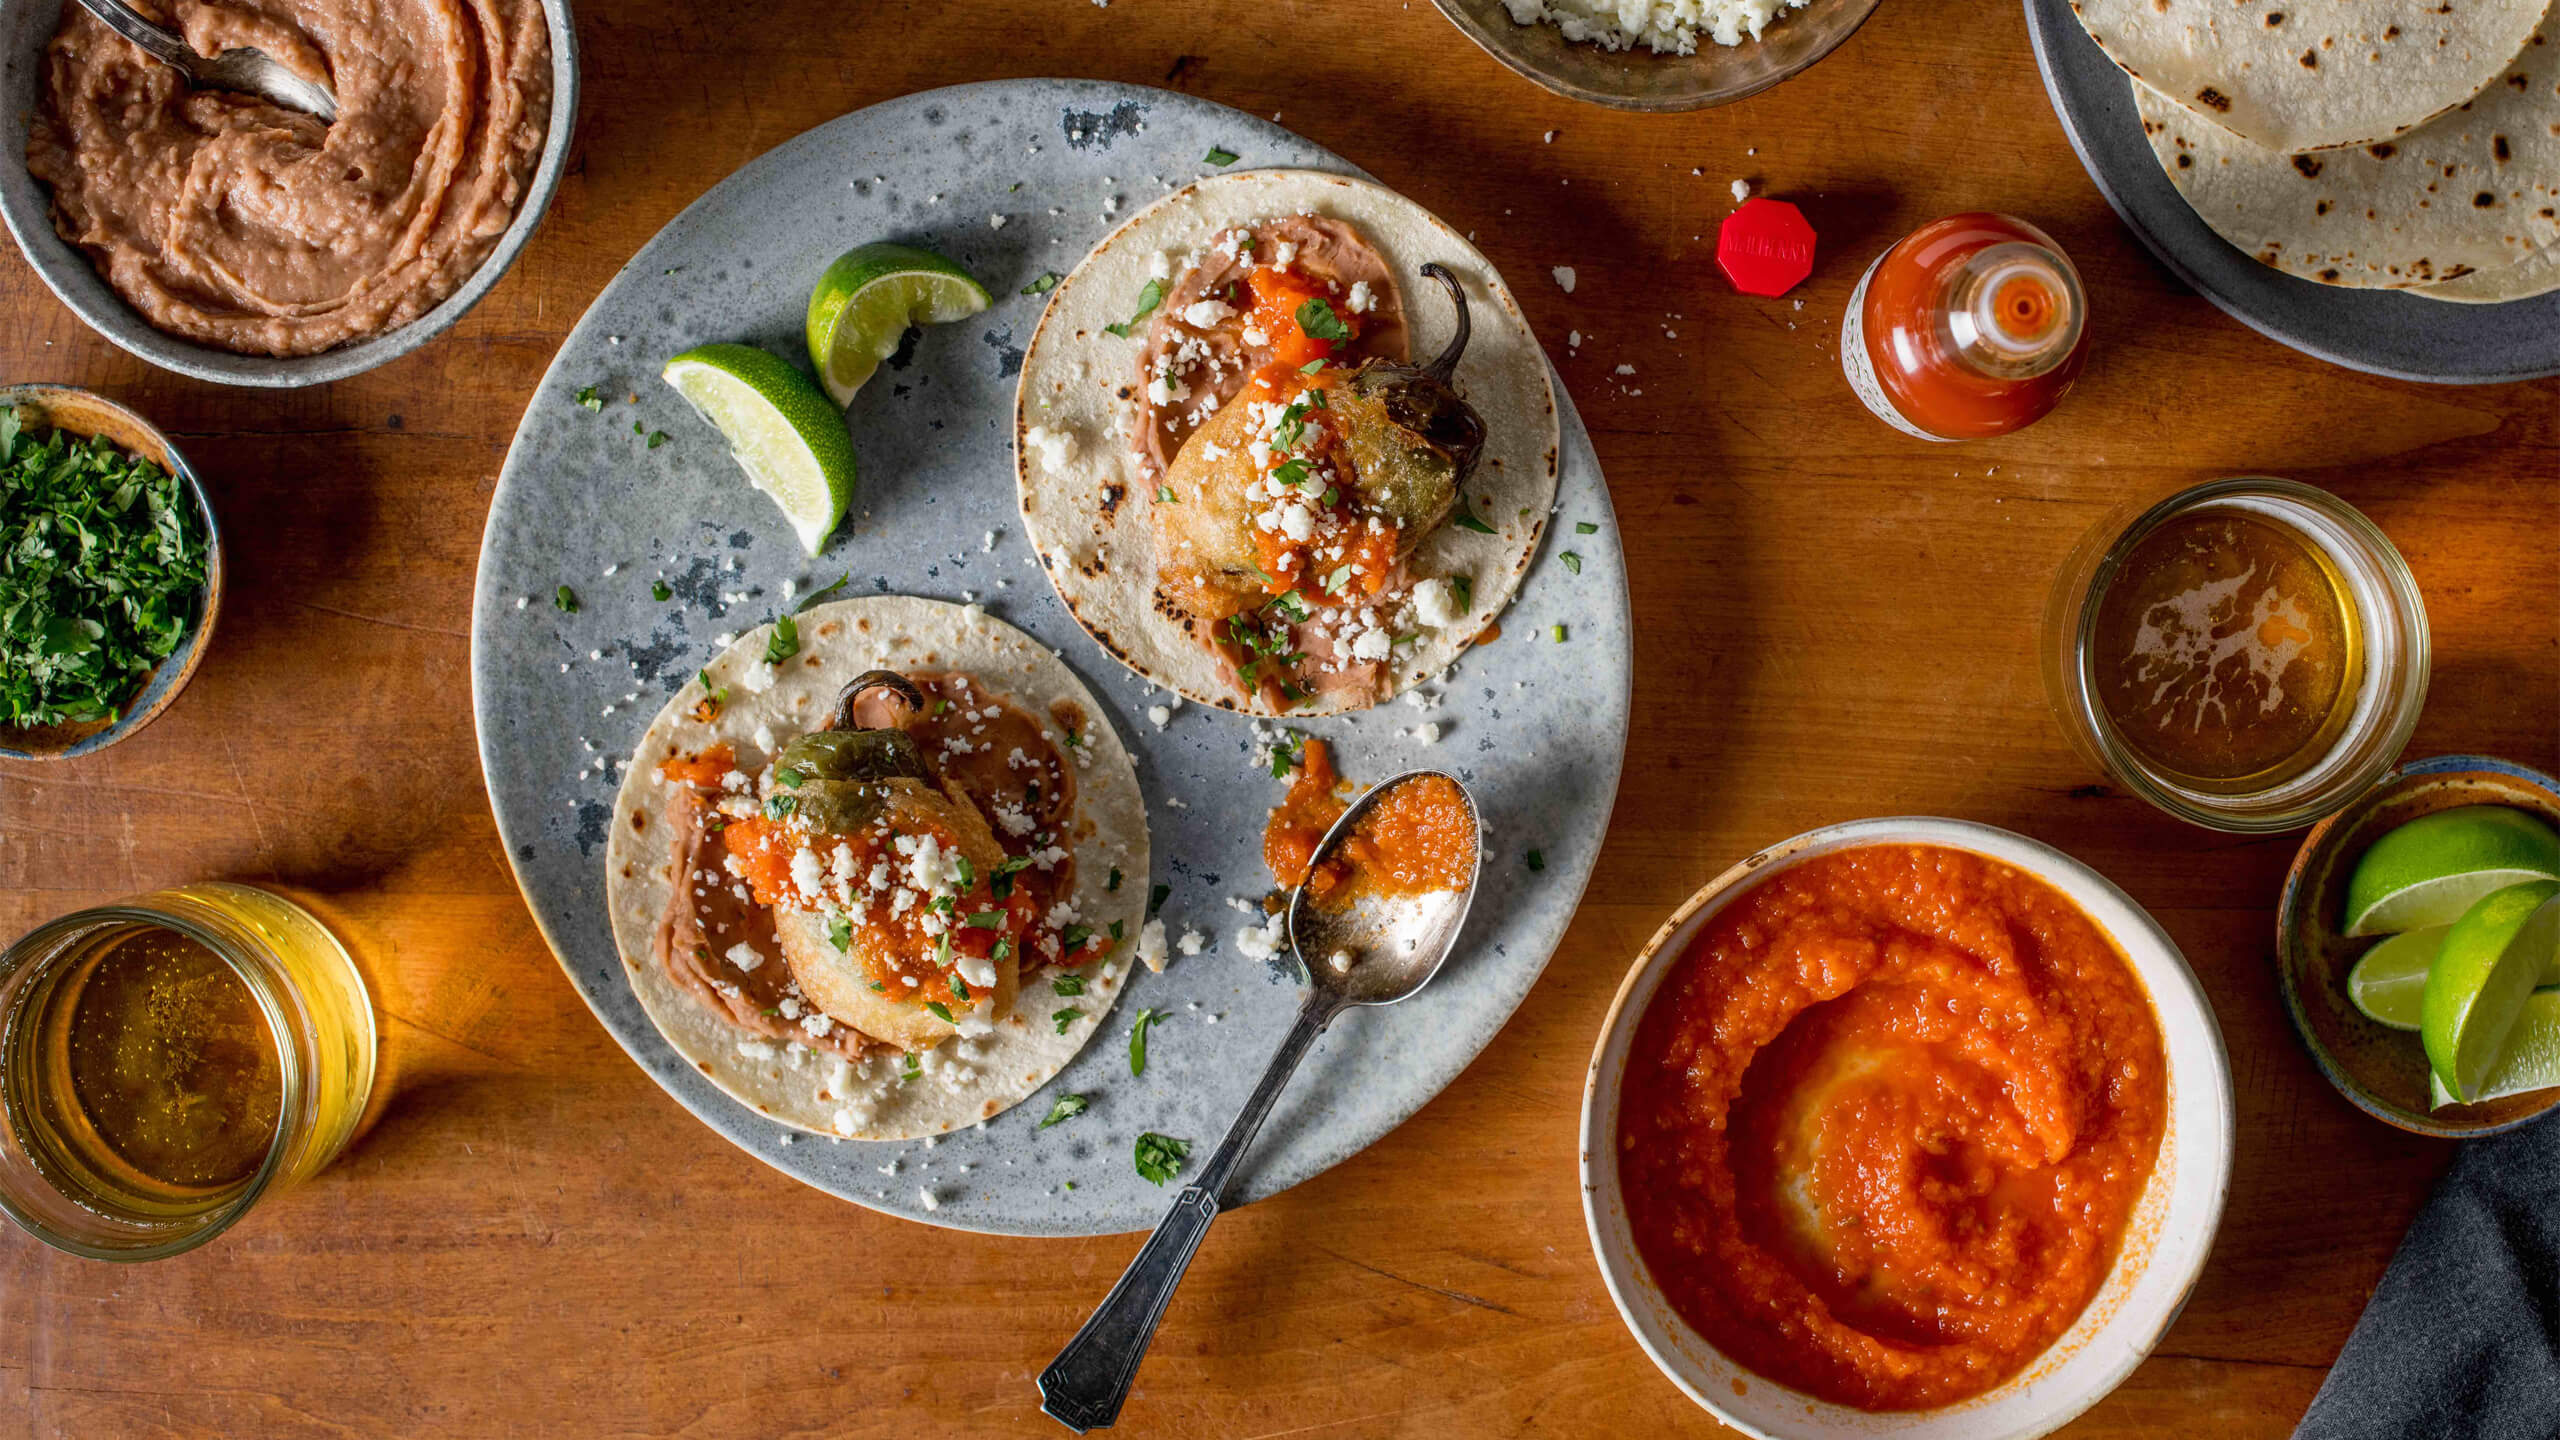 Chicken-Stuffed Chile Relleno Tacos with Spicy Tomato Sauce